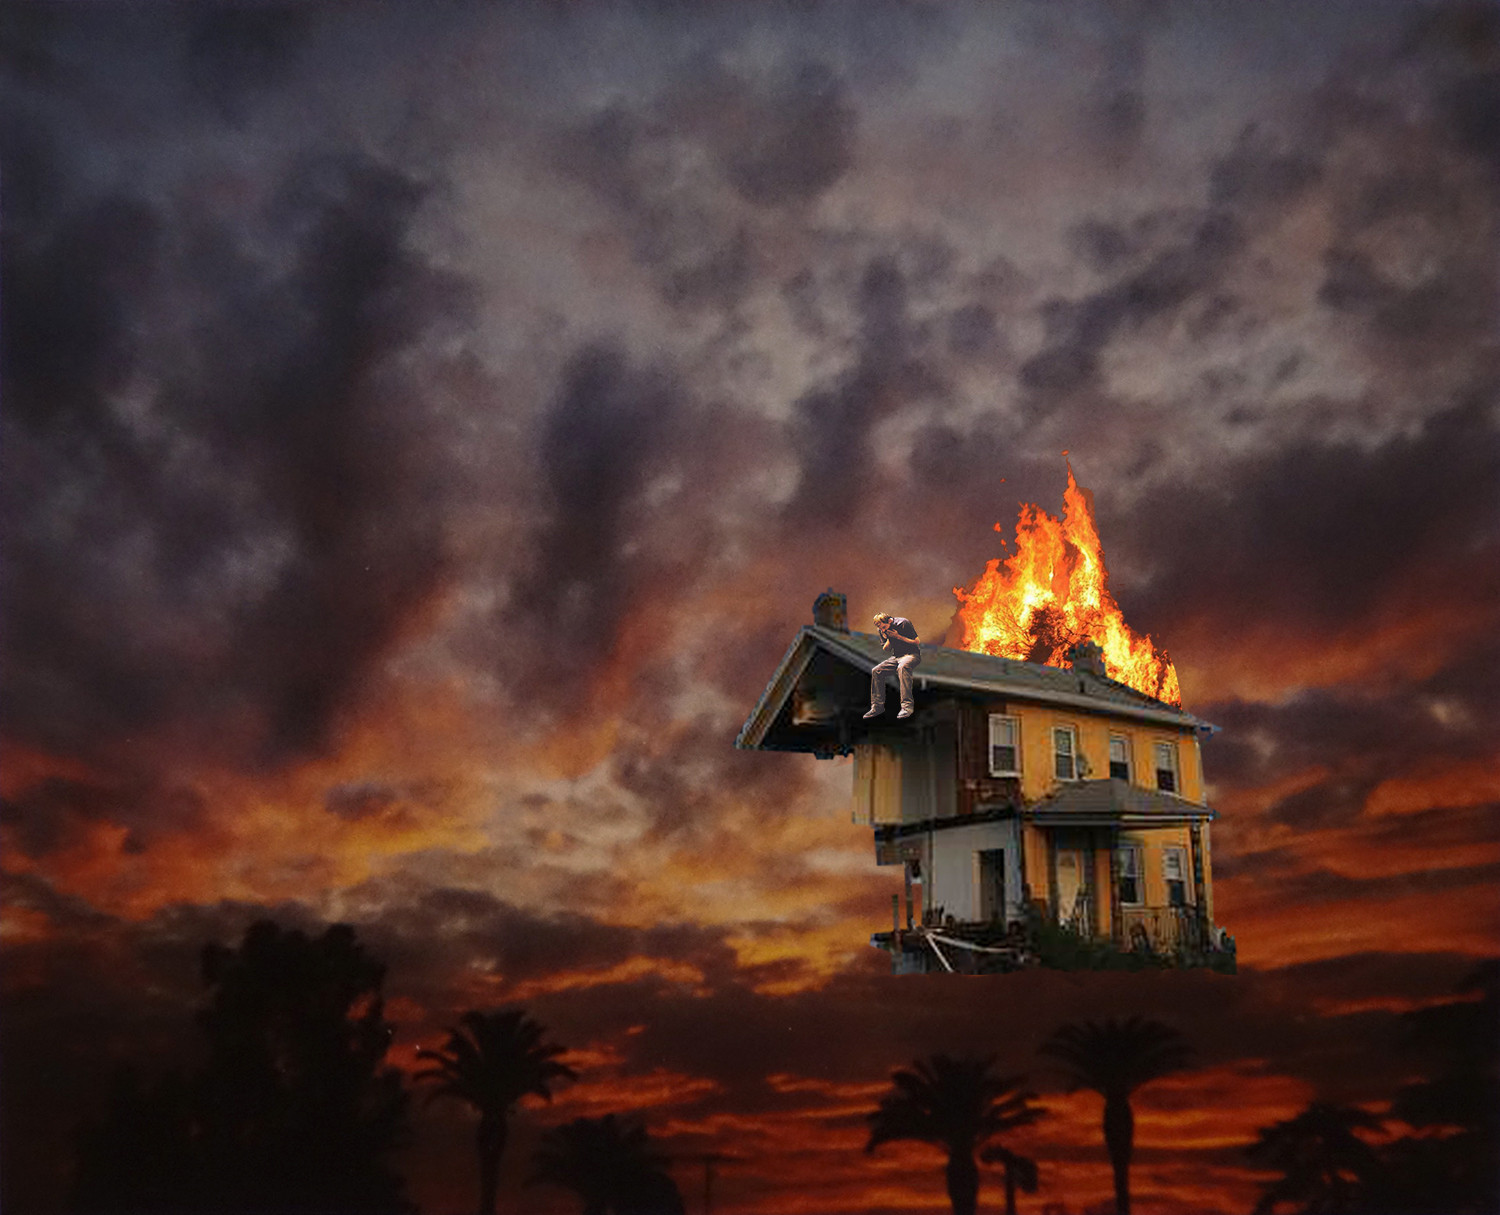 a digital painting of a house with its roof on fire in the foreground, a fiery red night sky in the background, representing climate change